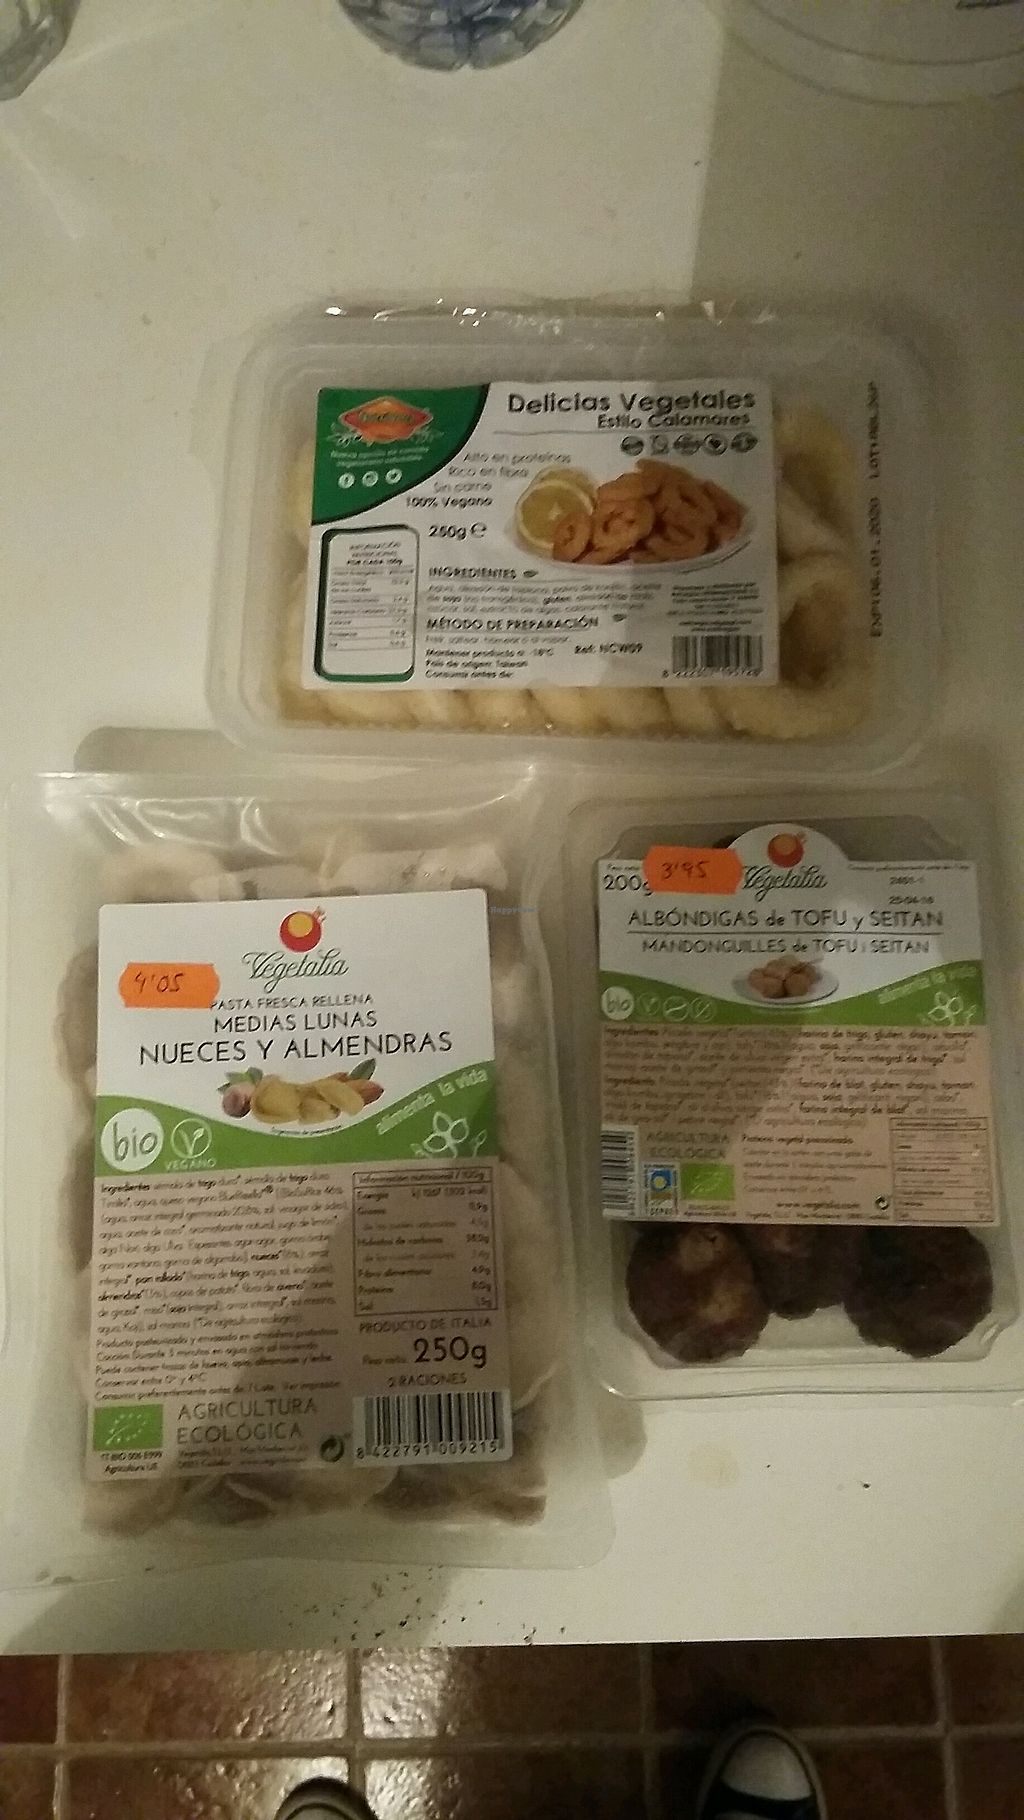 """Photo of Happy Vegetal  by <a href=""""/members/profile/Vegan-Vinyl-Avengers"""">Vegan-Vinyl-Avengers</a> <br/>Frozen vegan food from Happy Vegetal  <br/> March 1, 2018  - <a href='/contact/abuse/image/86522/365354'>Report</a>"""